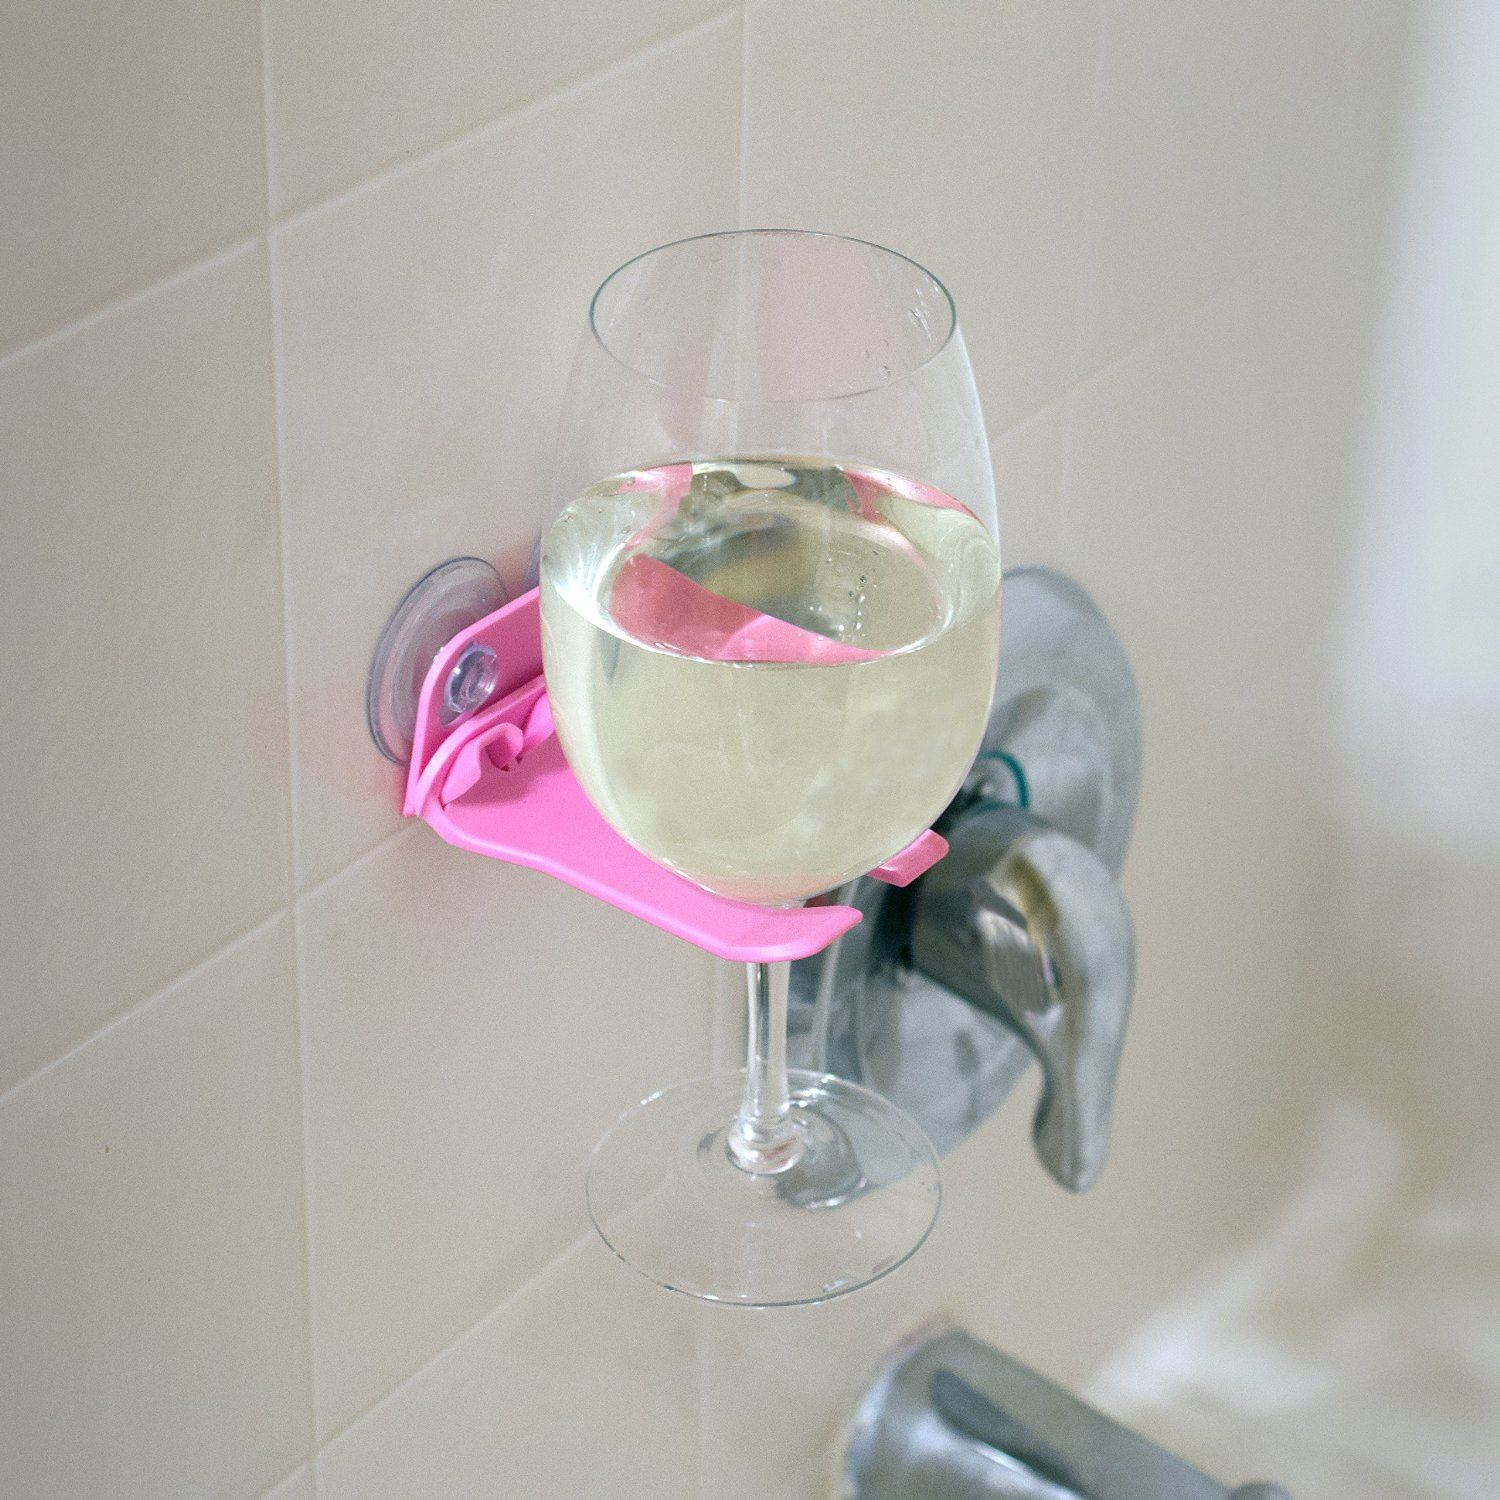 Bathtub Wine Glass Holder Suction Cups By WaveHooks. Bathtub Wine Glass Holder Suction Cups By WaveHooks 5 Colors To